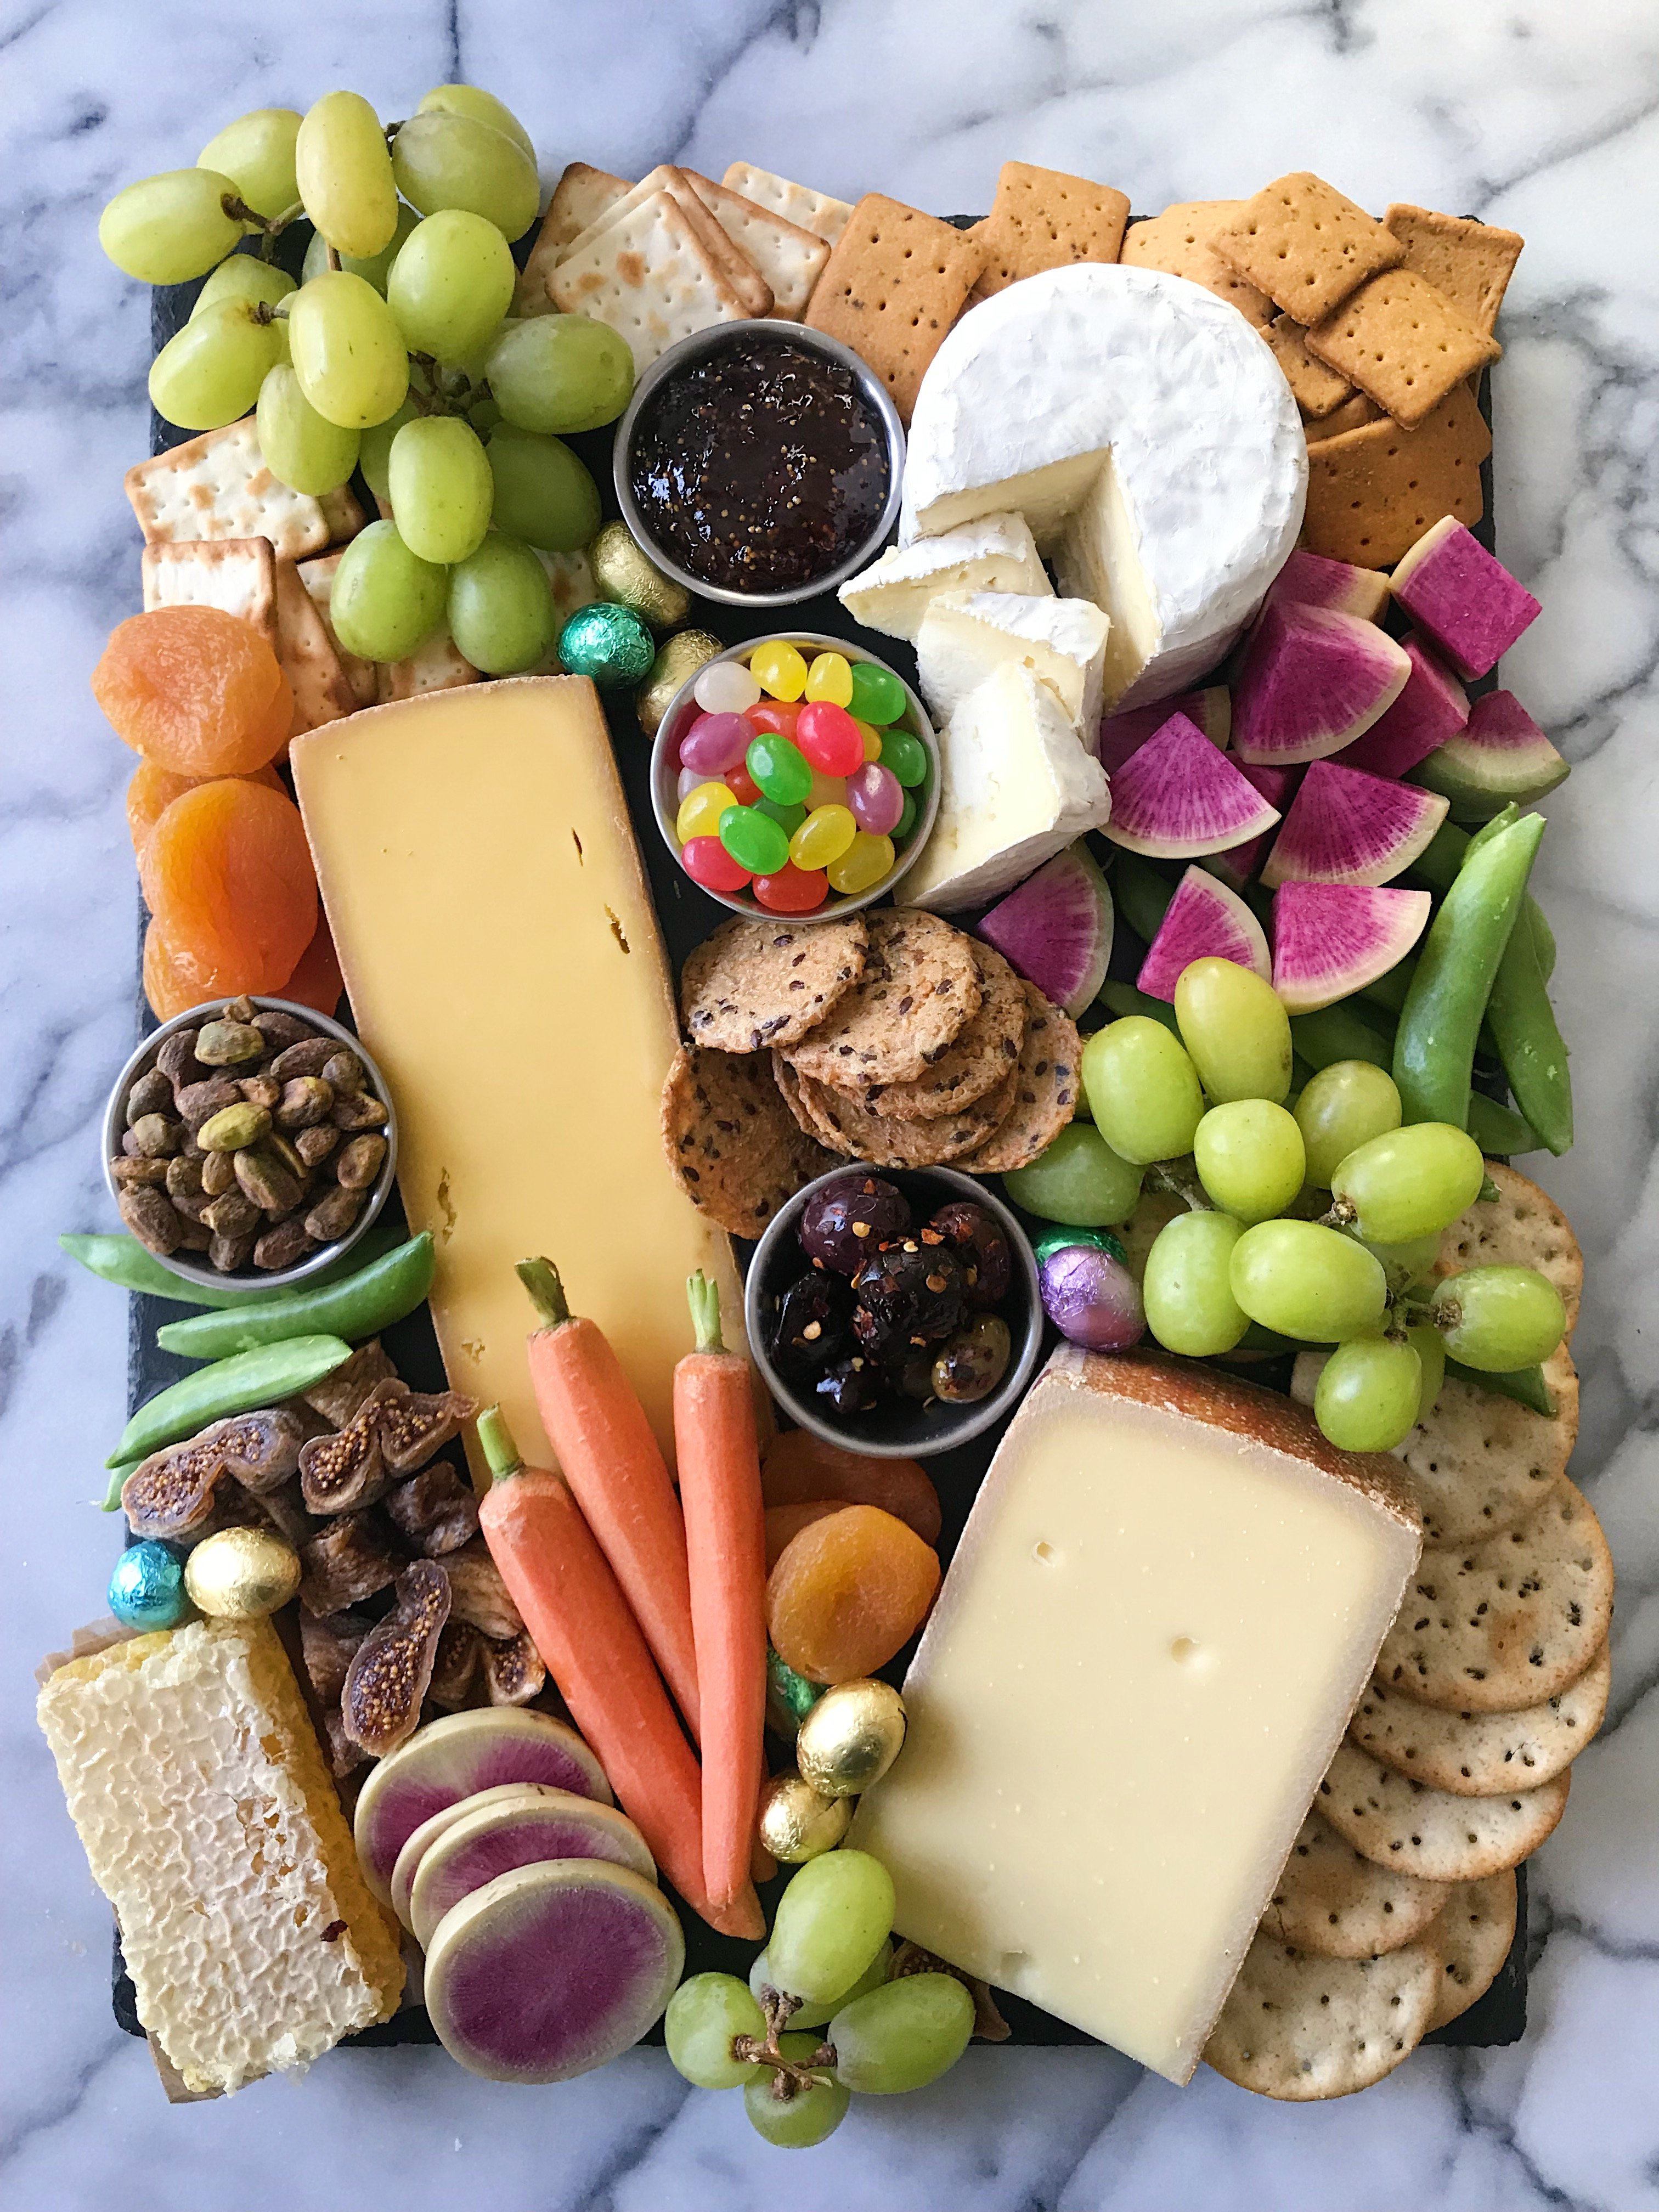 How To Build The Ultimate Cheese Board Easter Edition Healthygffamily Com